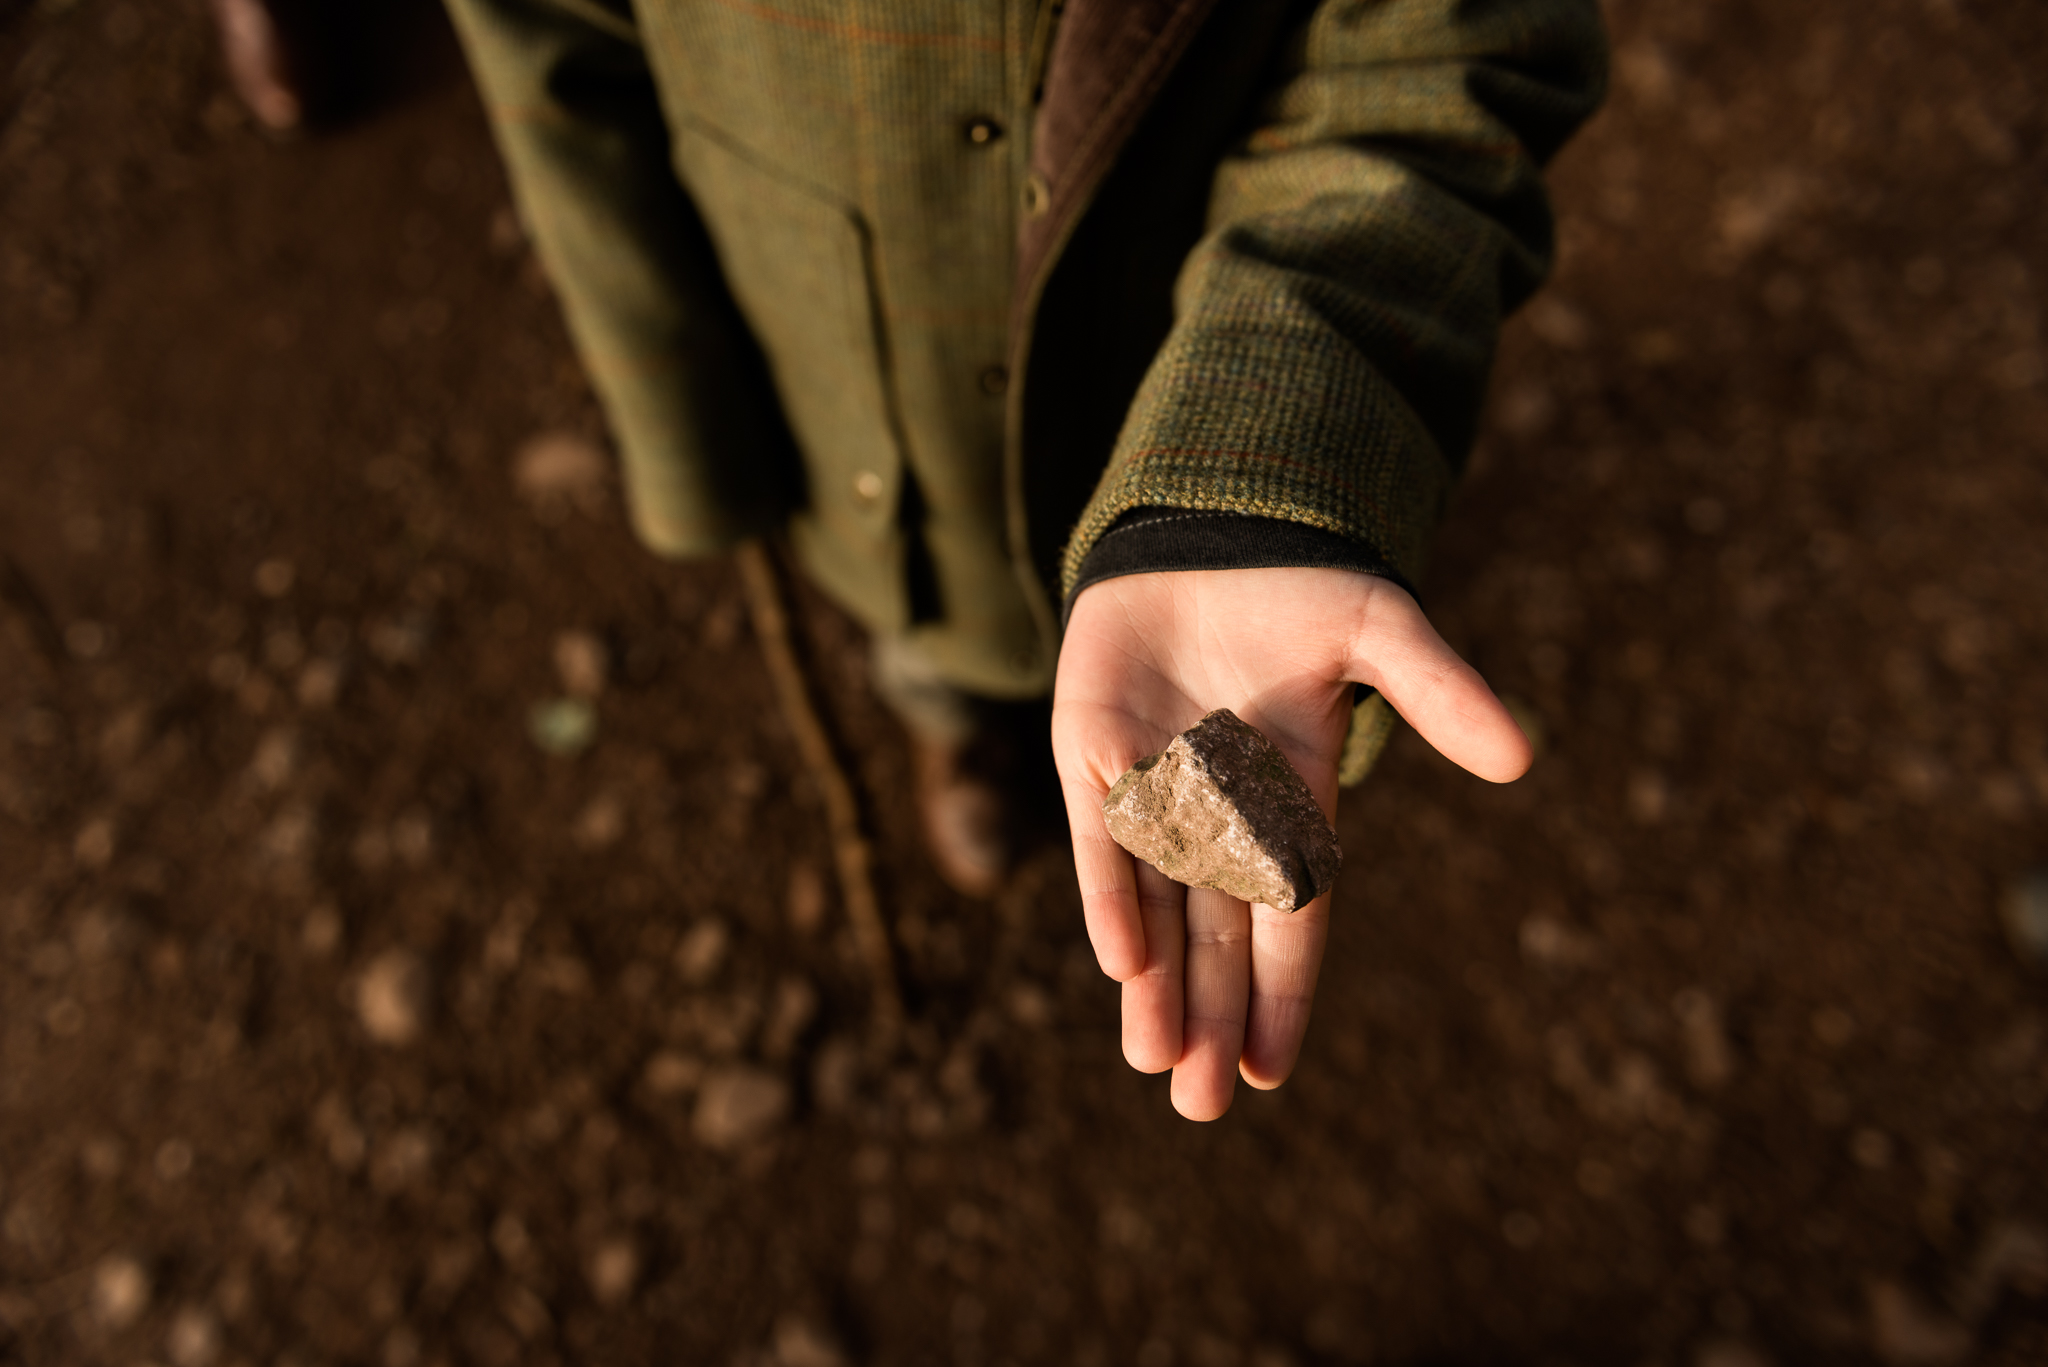 Autumn Documentary Lifestyle Family Photography at Clent Hills, Worcestershire Country Park countryside outdoors nature - Jenny Harper-17.jpg